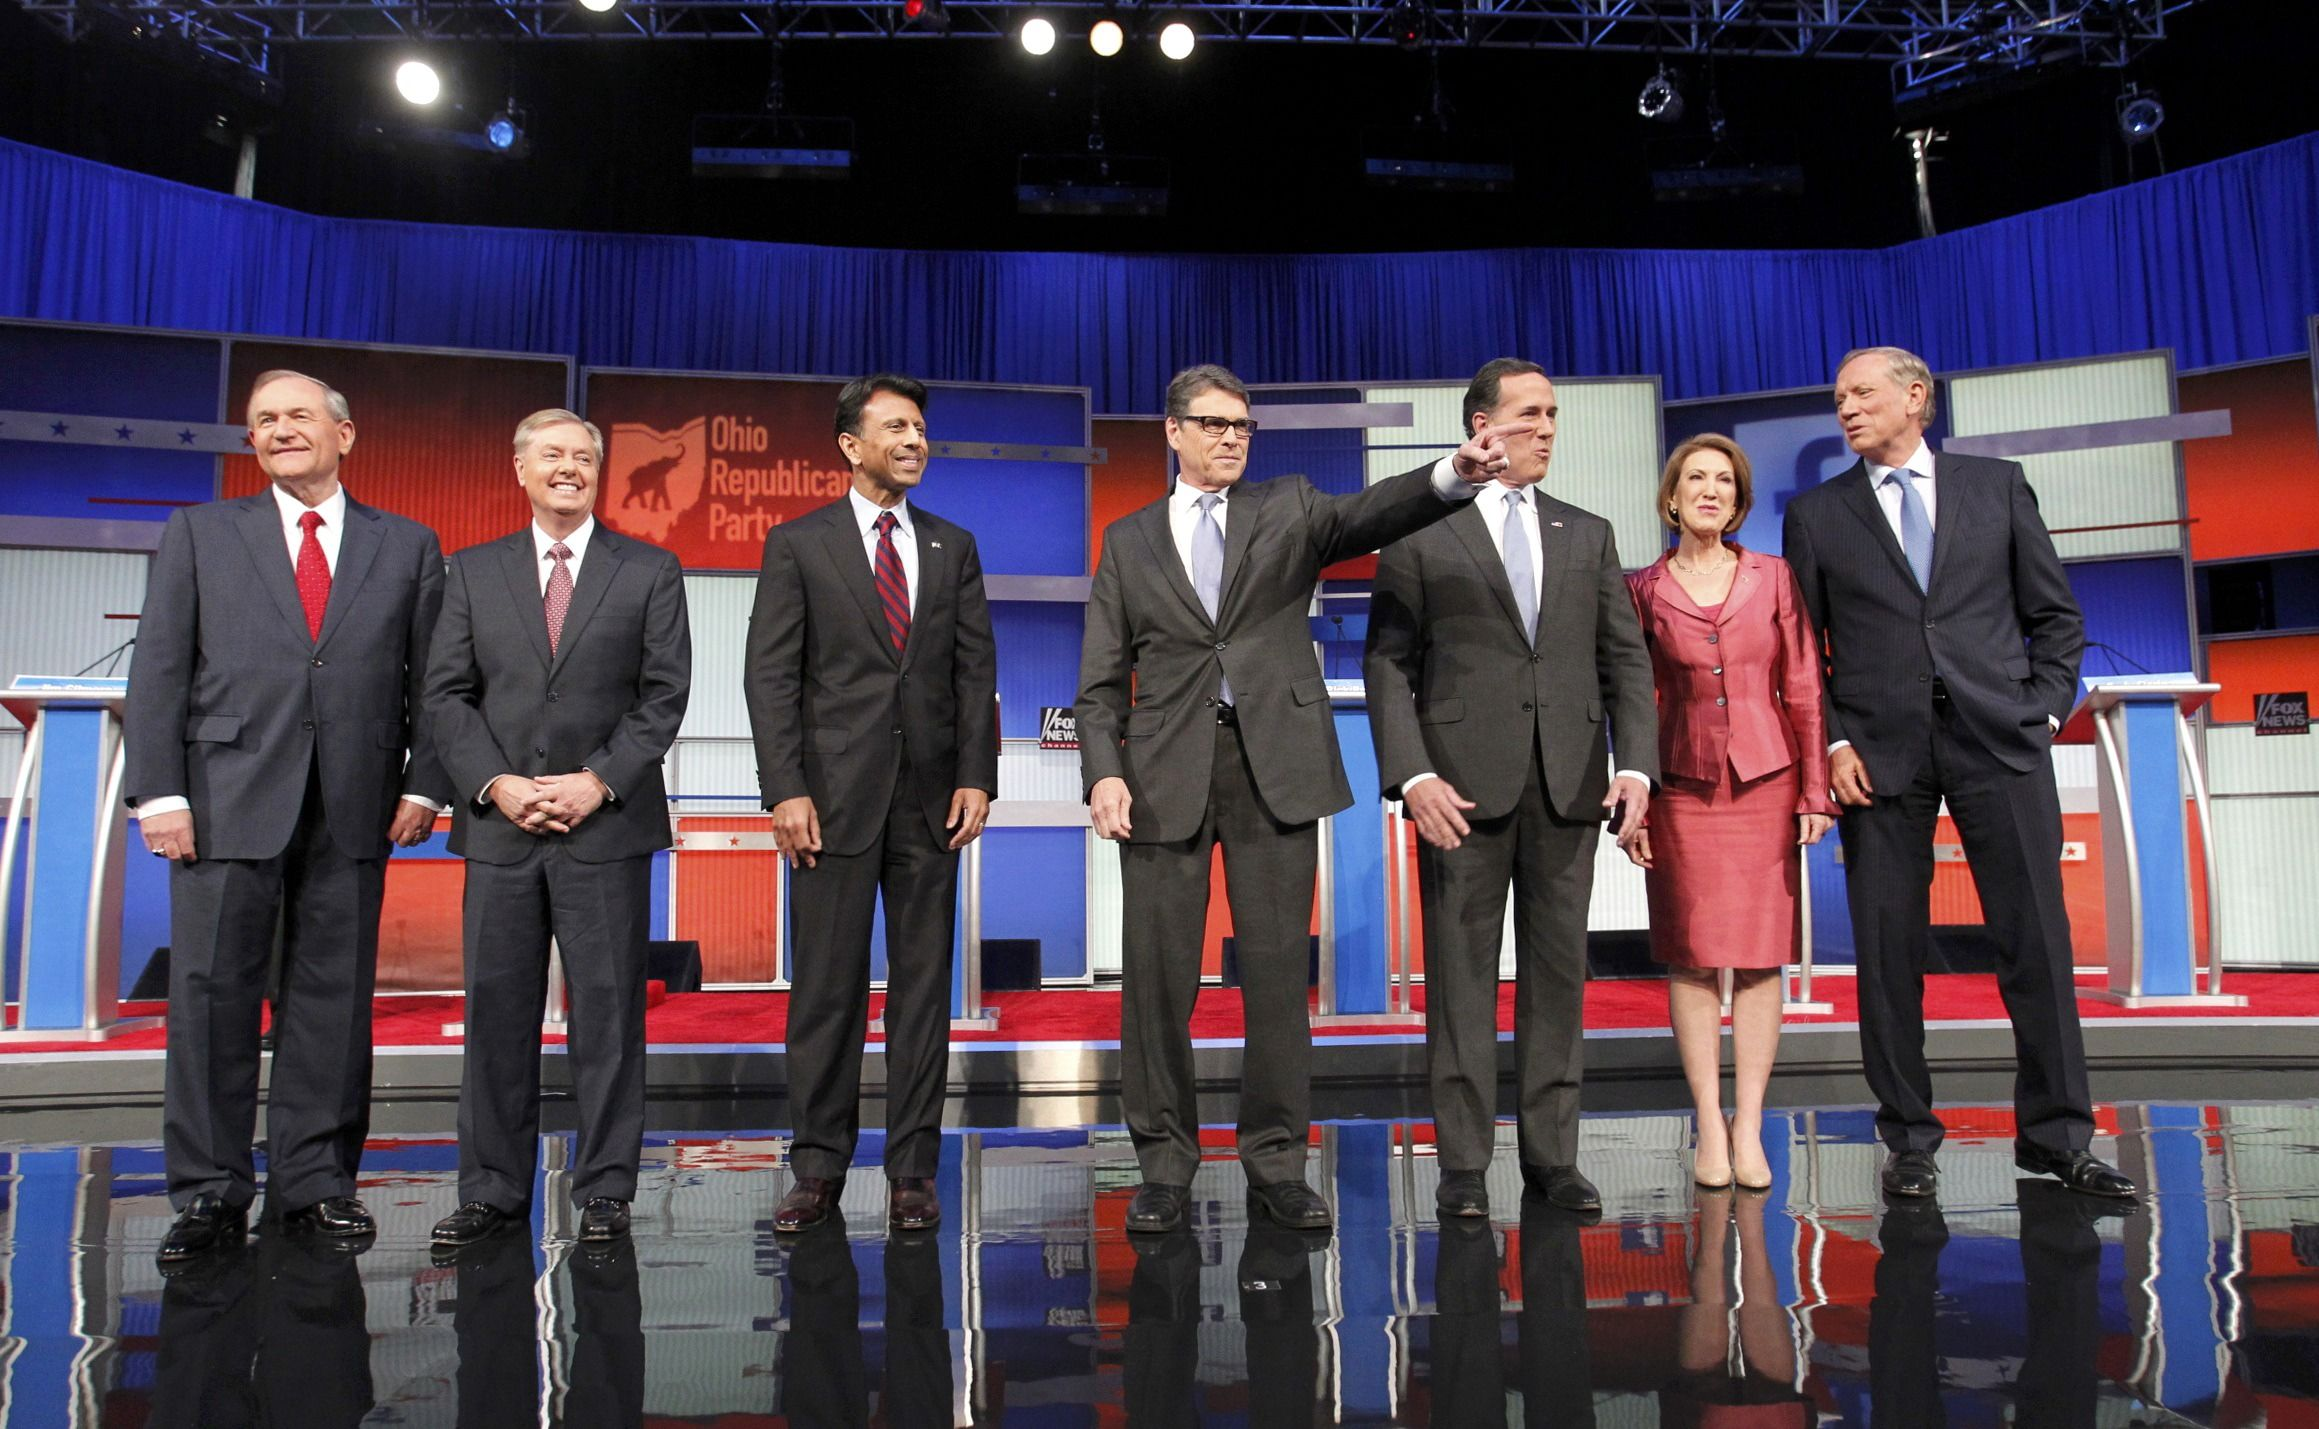 Second-Tier Candidates Square Off Before Main Republican ...